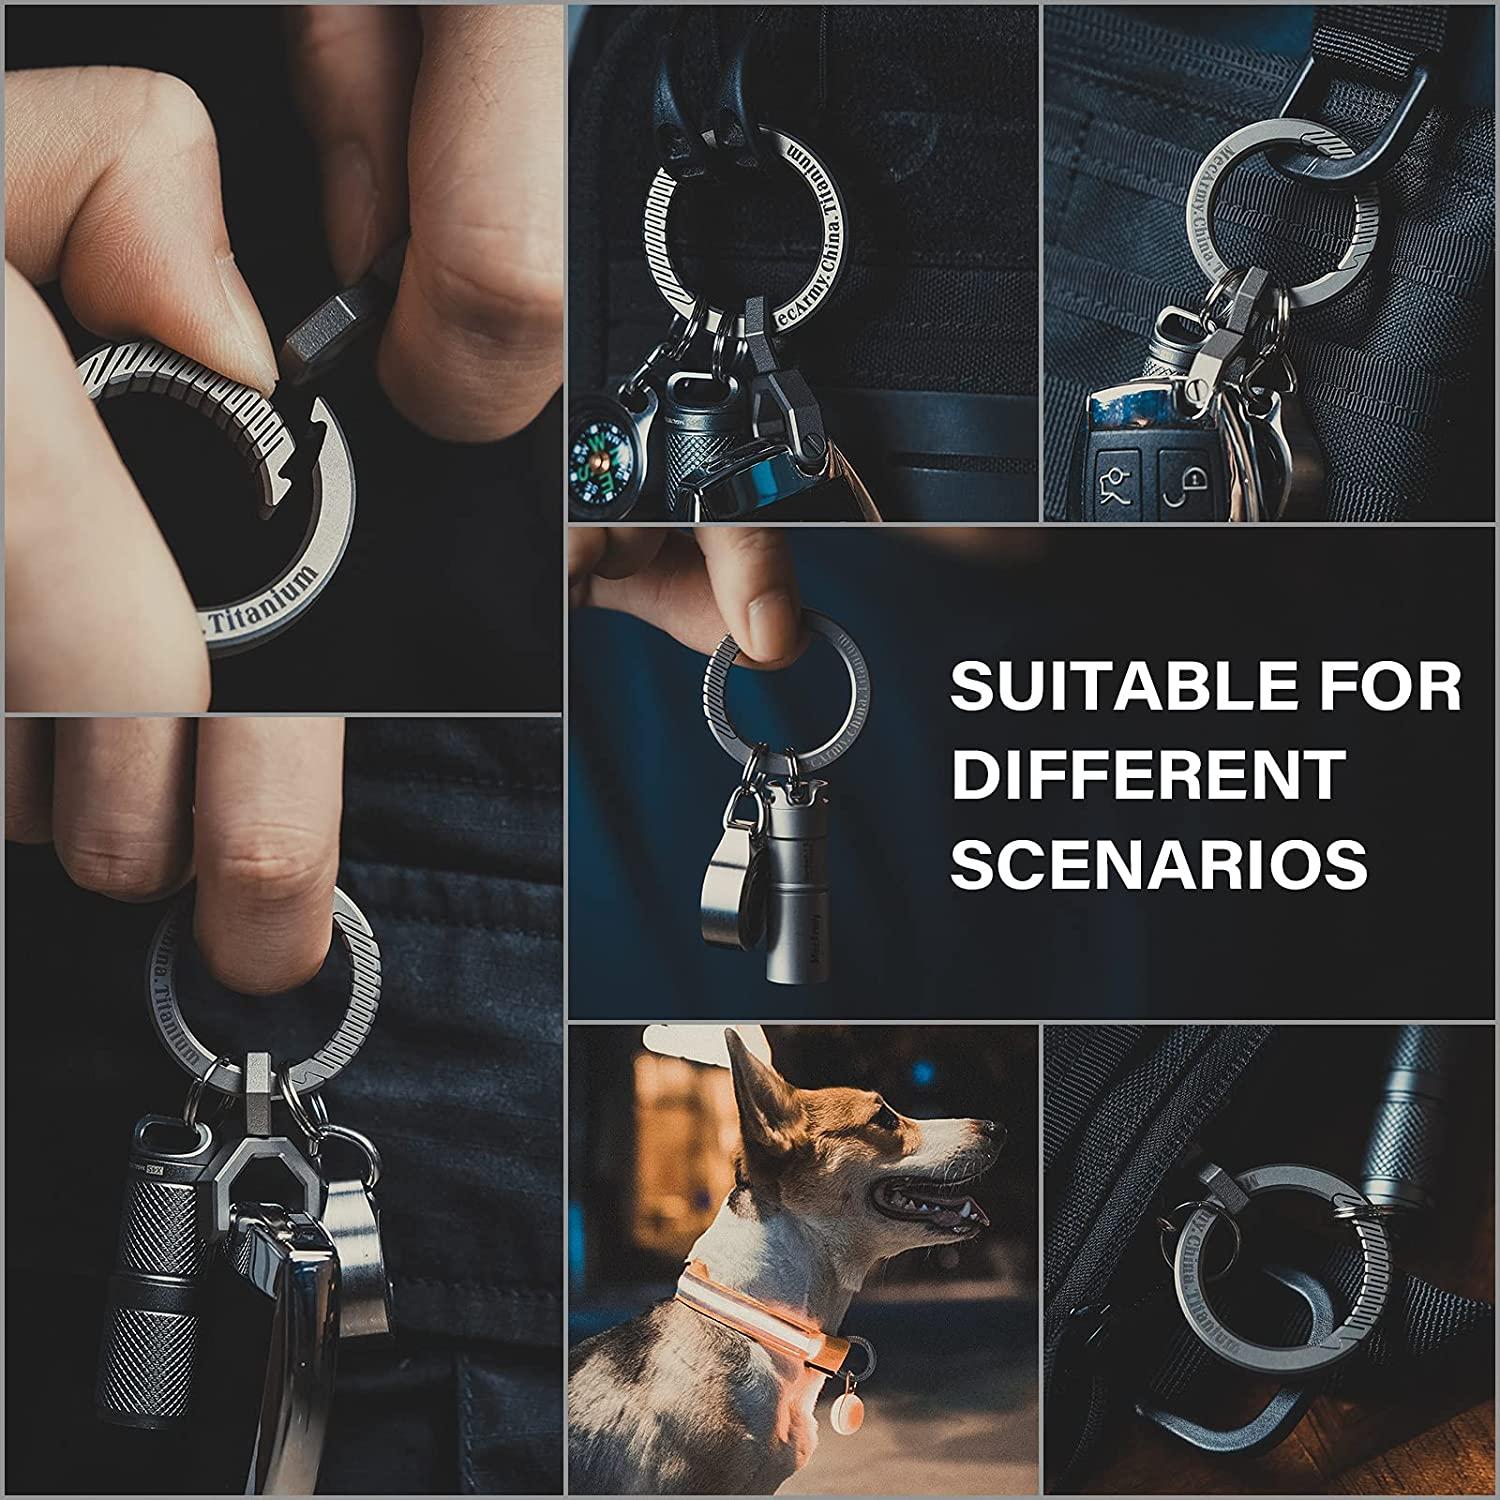 MecArmy CH9/CH10 Circle Keychain, Titanium Carabiner EDC Key Ring Clip, Anti-Lost Quick Release Spring Snap Keyring for EDC